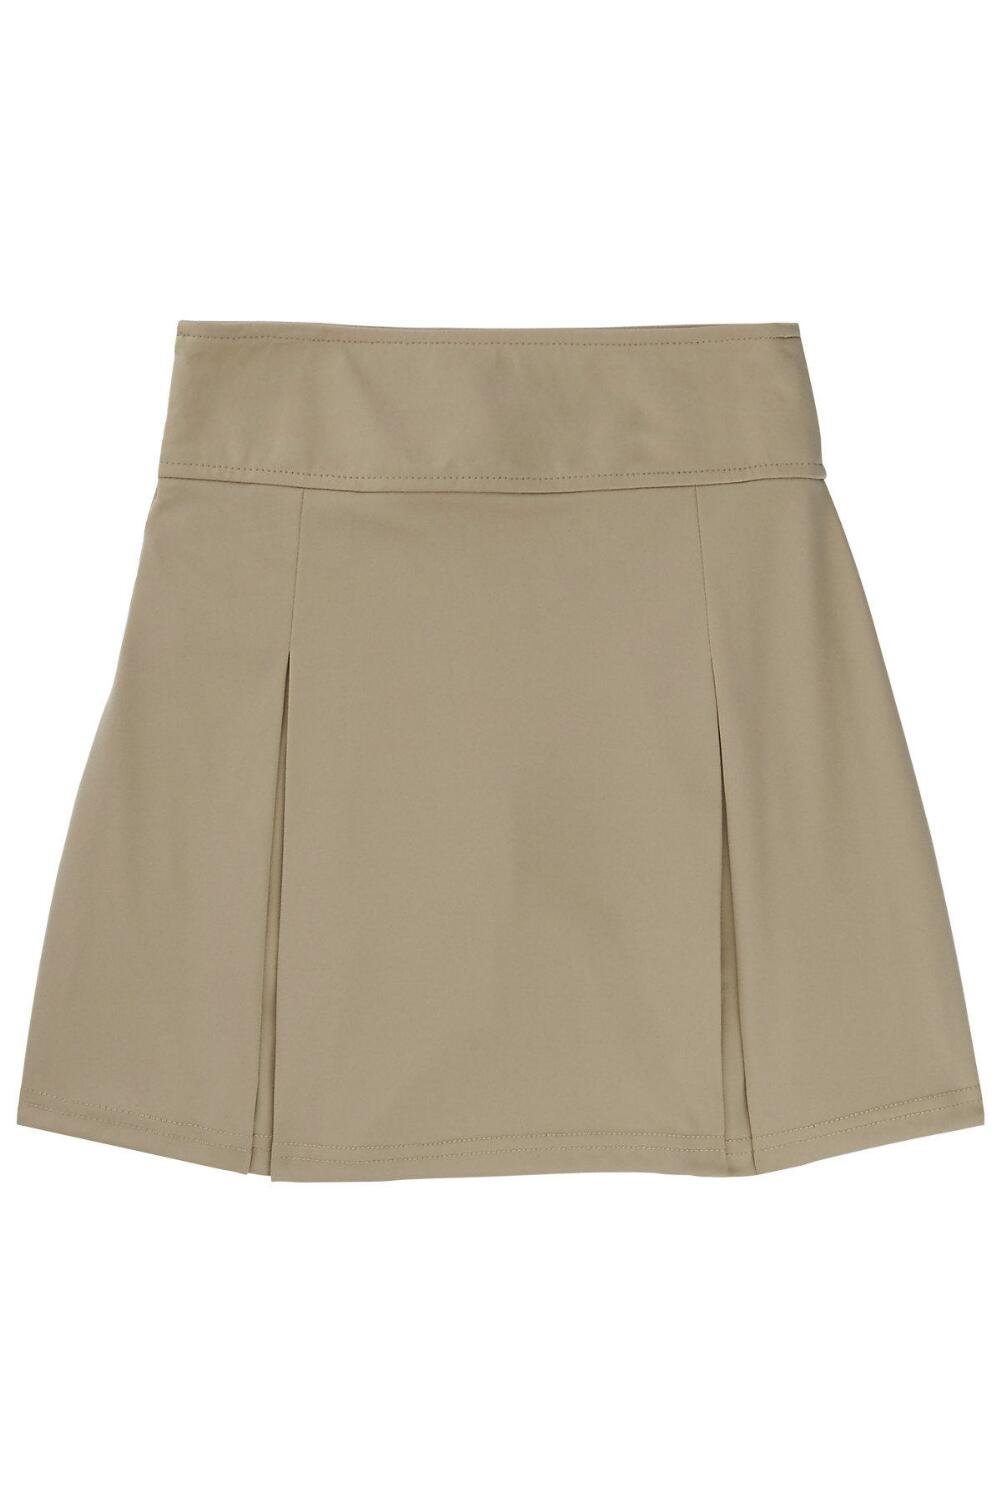 Khaki French Toast Girls Big Stretch Pull-On Tie Front Short 10